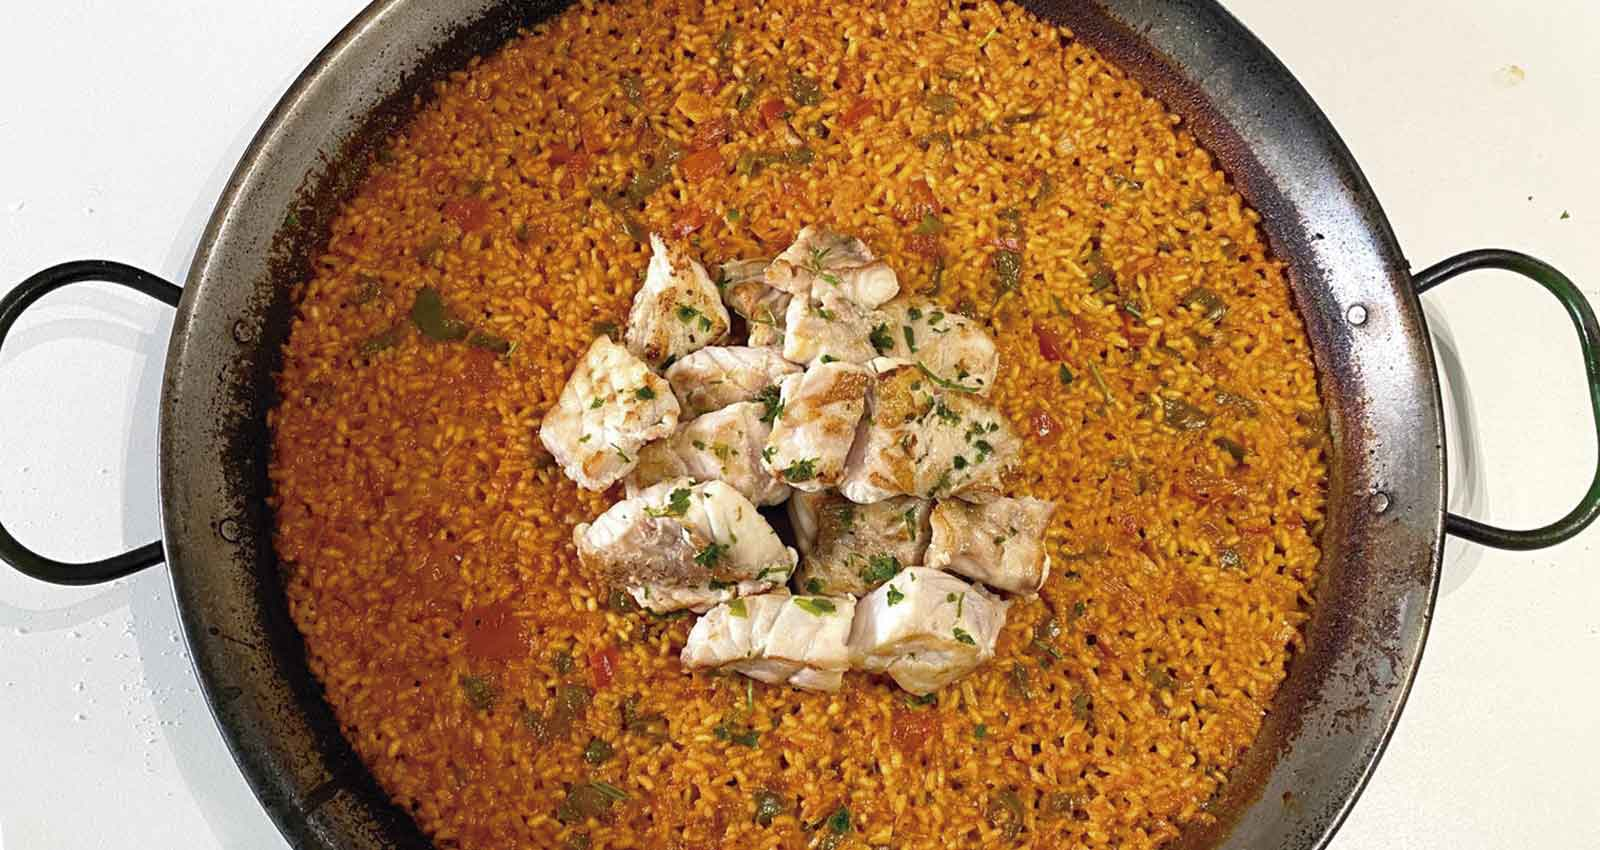 Molino Roca rice with grouper - Gastroactitud.  Passion for food